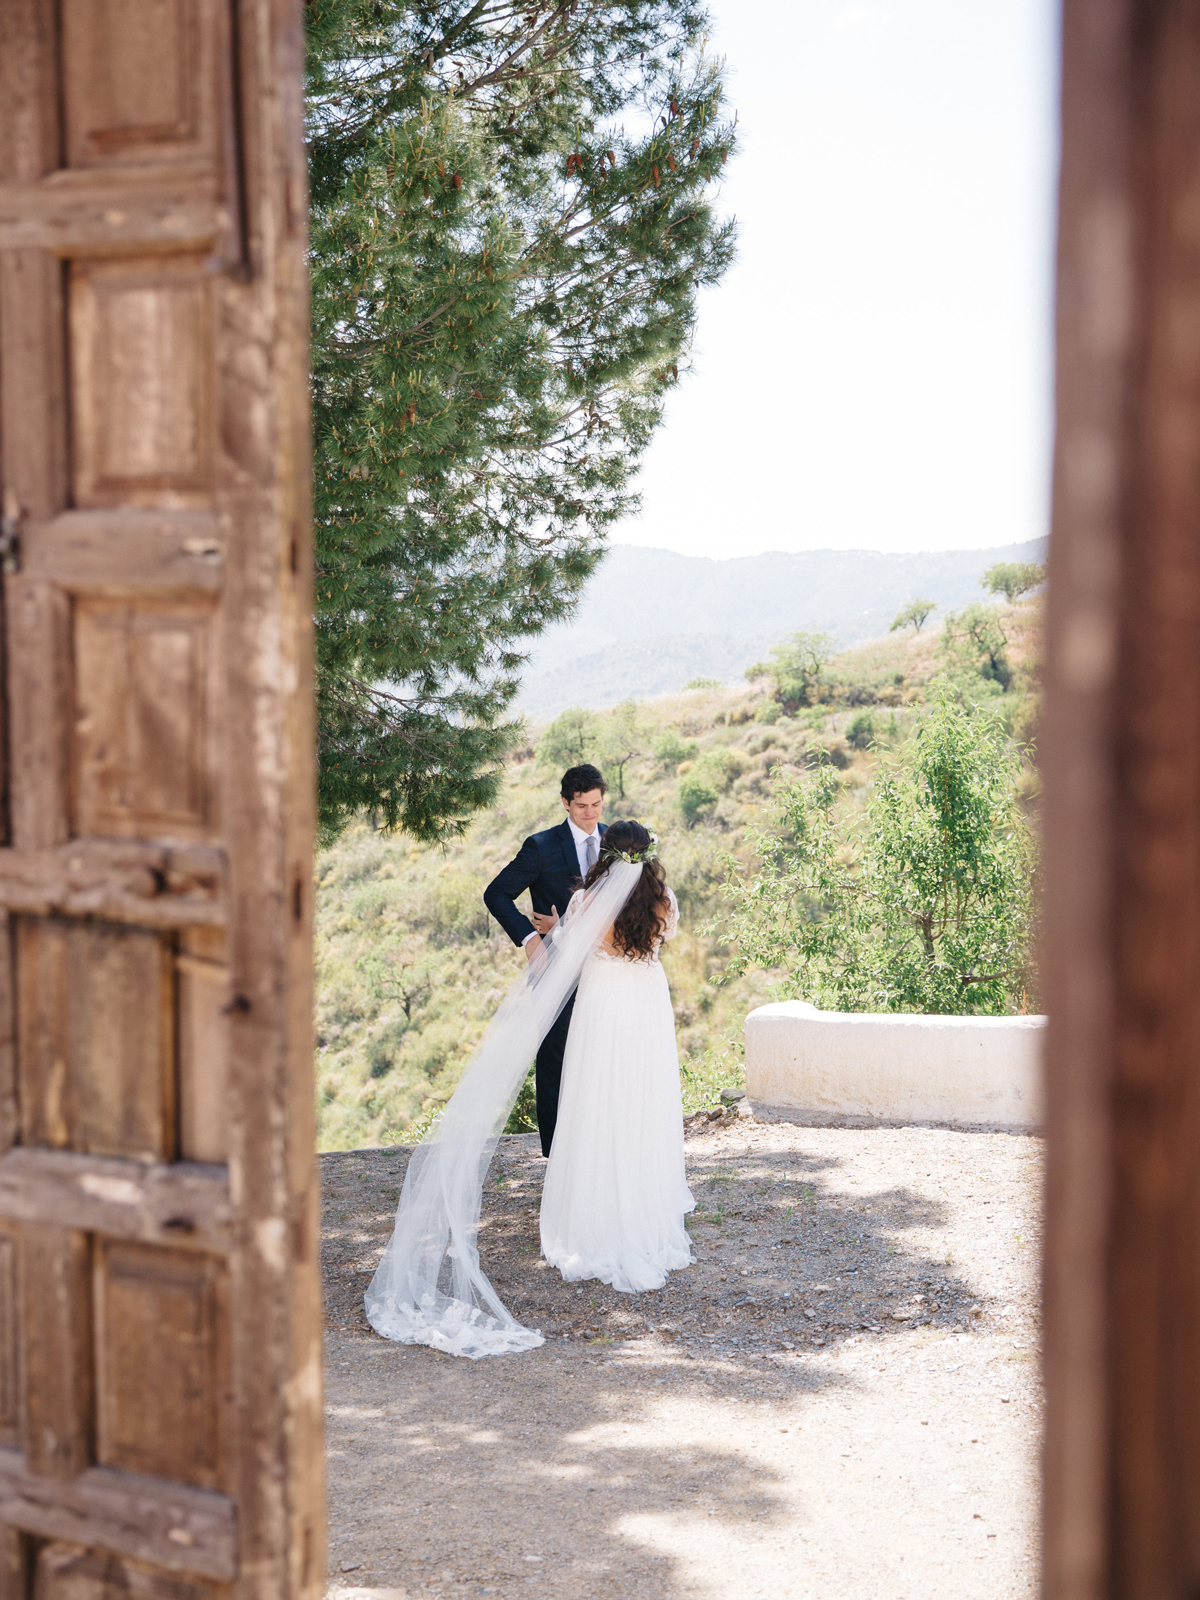 daphne jack wedding spain first look